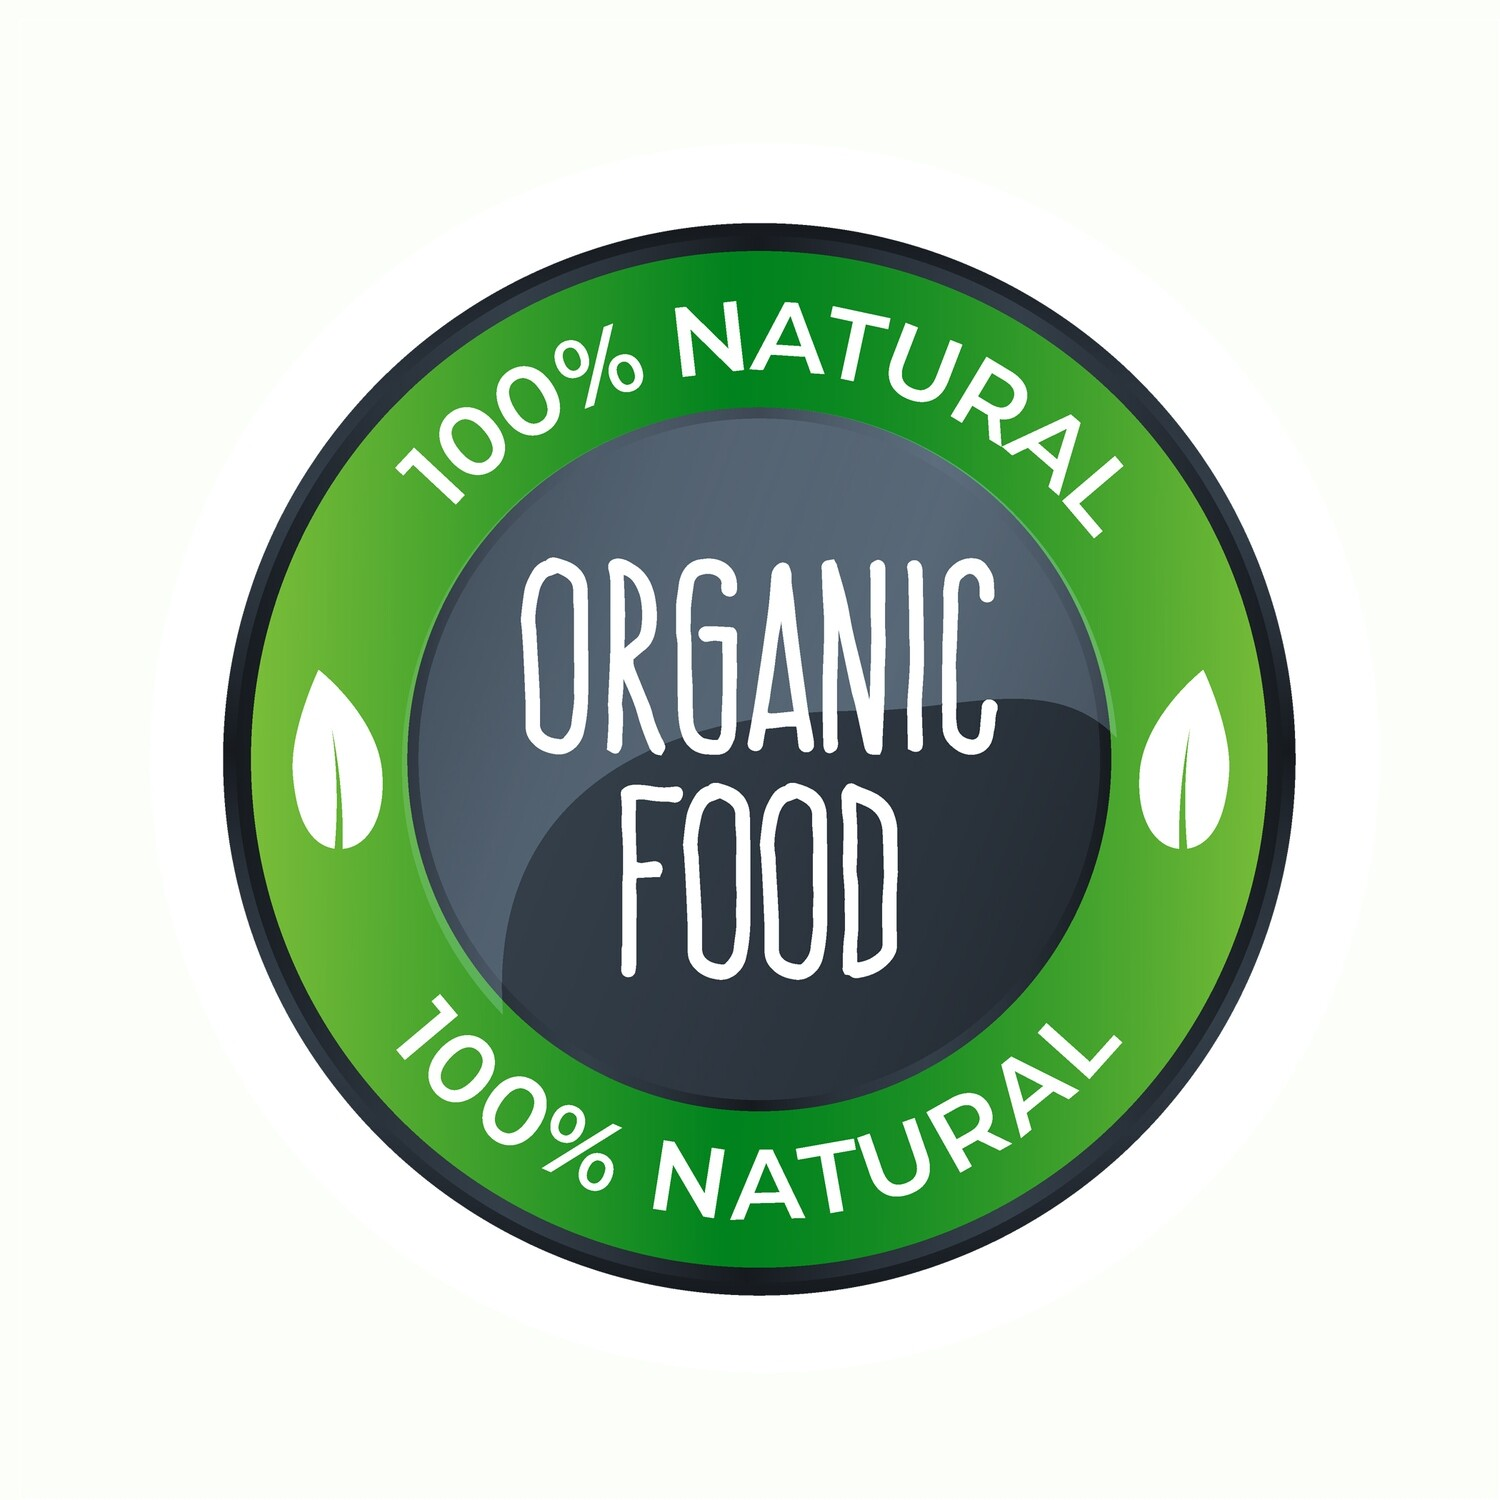 Thank You Stickers, Happy Mail Labels, Packaging Stickers-Design Quality Organic Food Labels With A Circle Shape